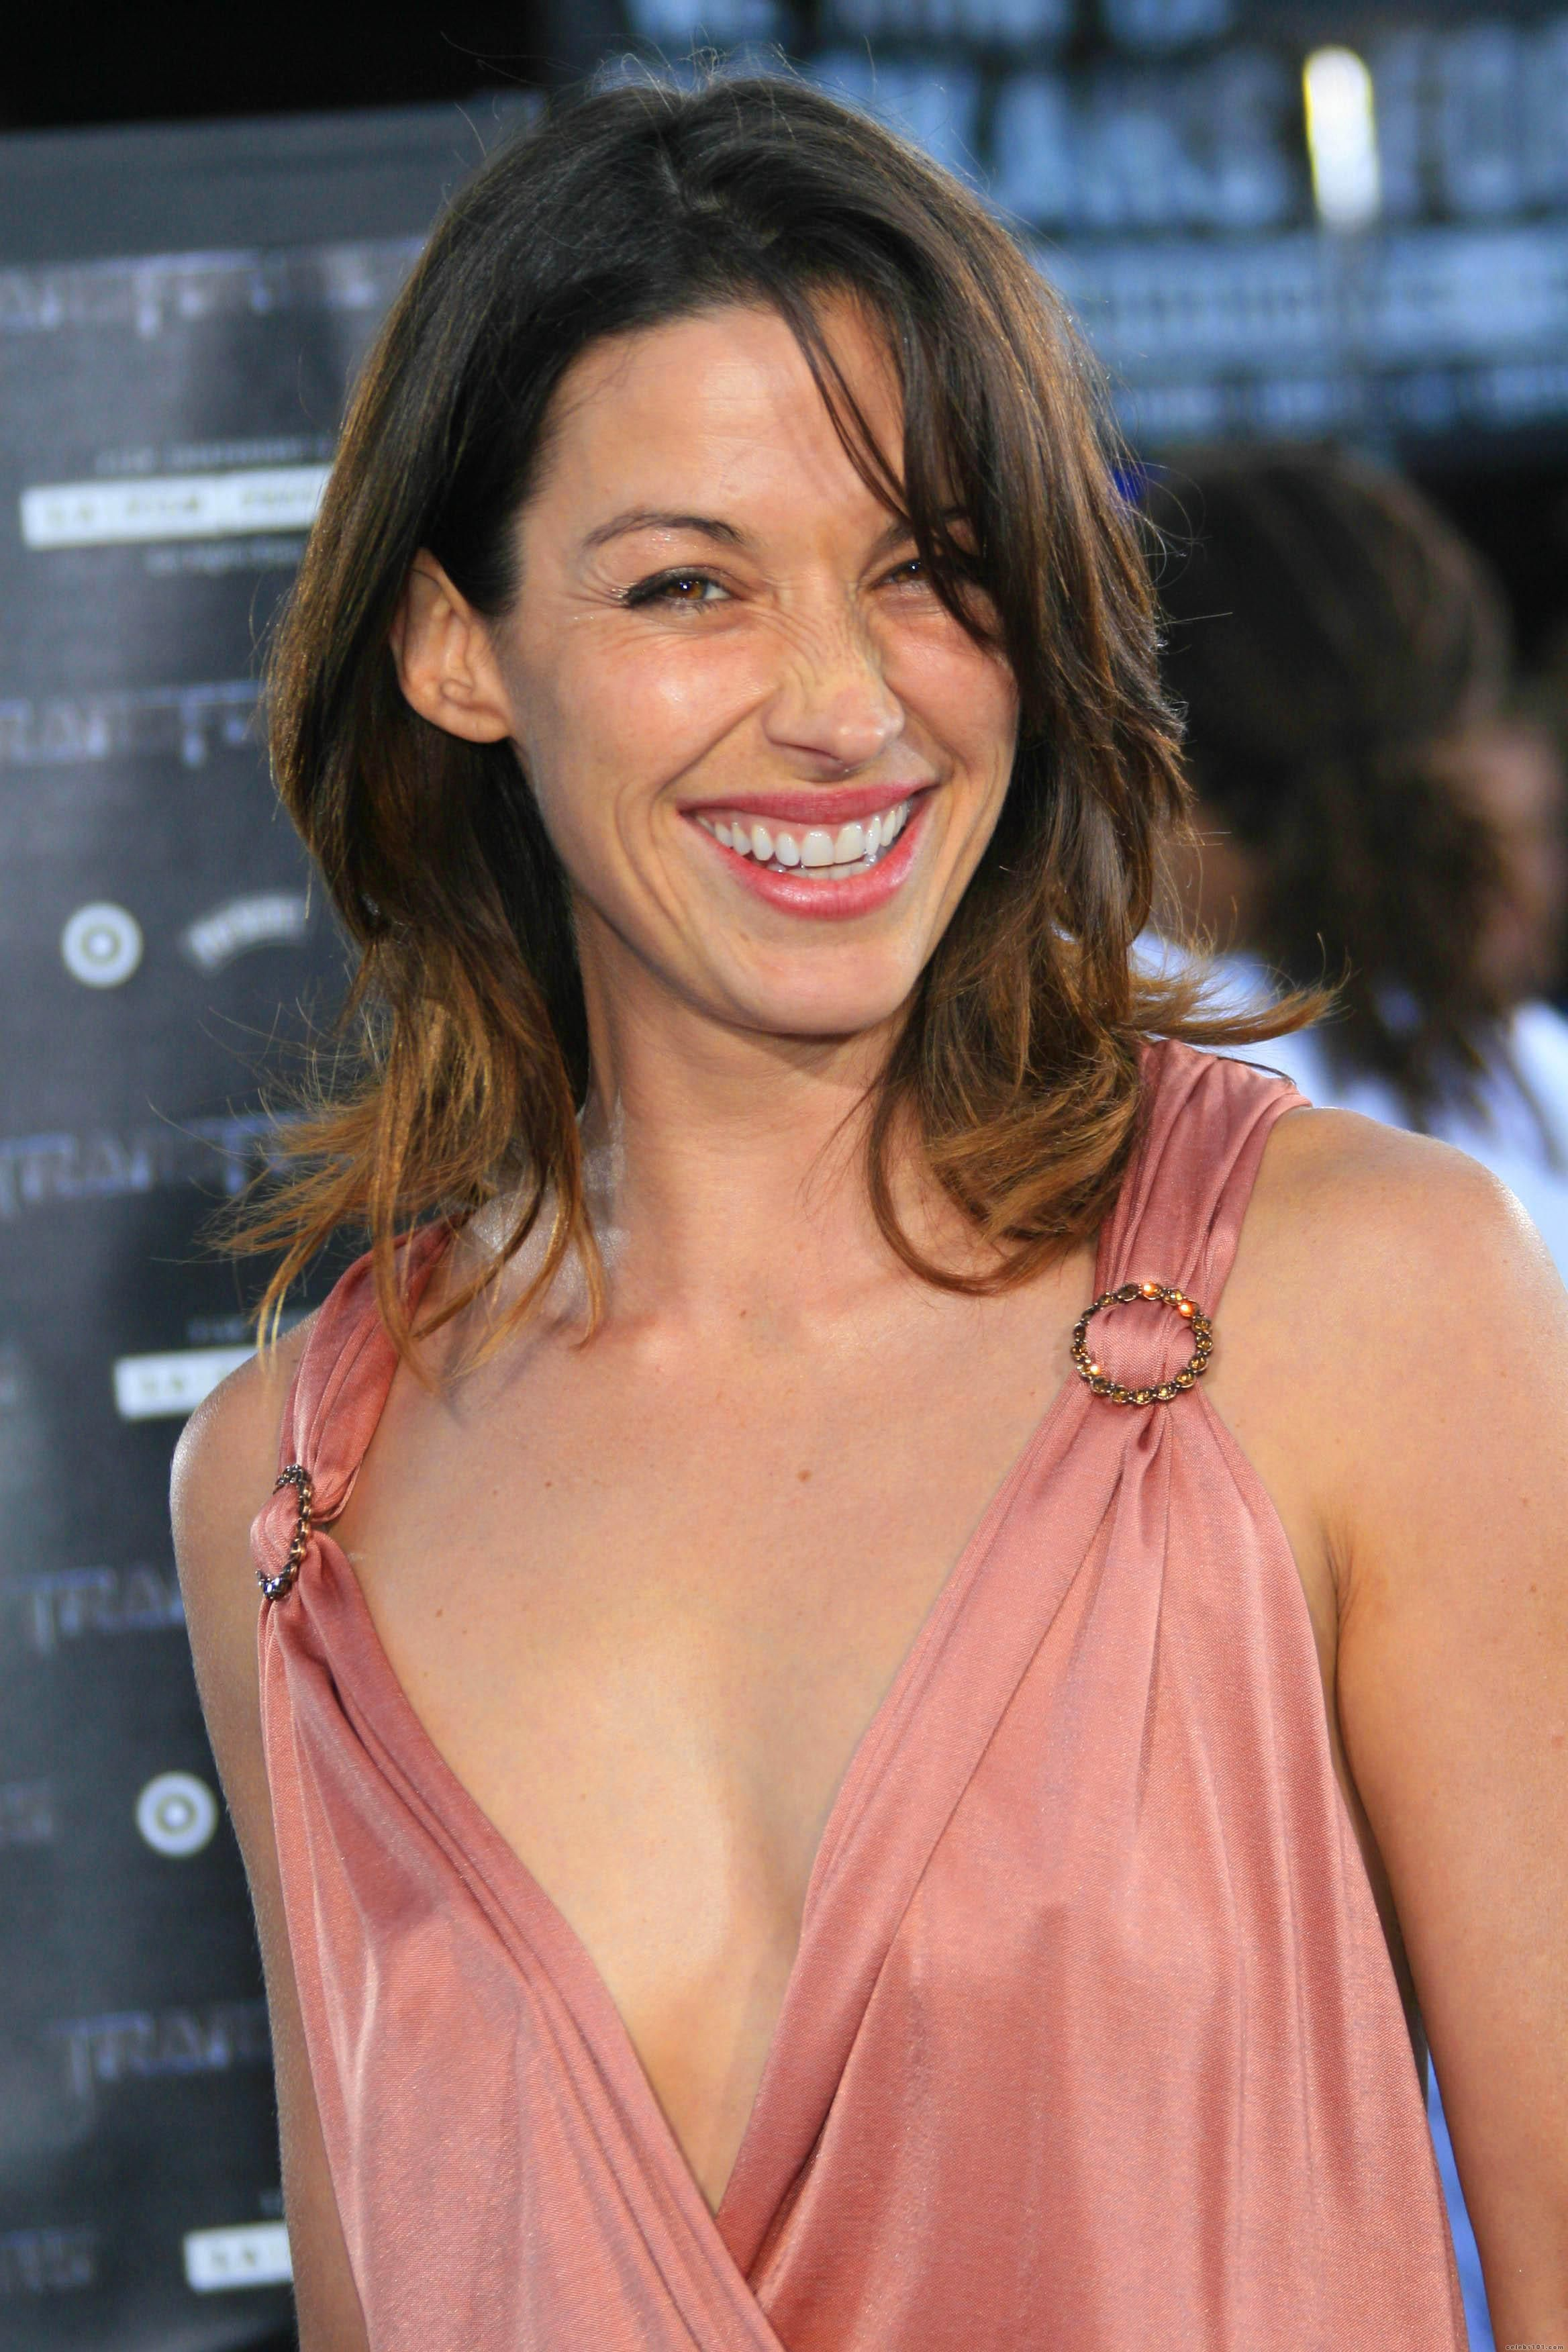 Brooke Langton naked (38 photo), Sexy, Bikini, Twitter, braless 2020